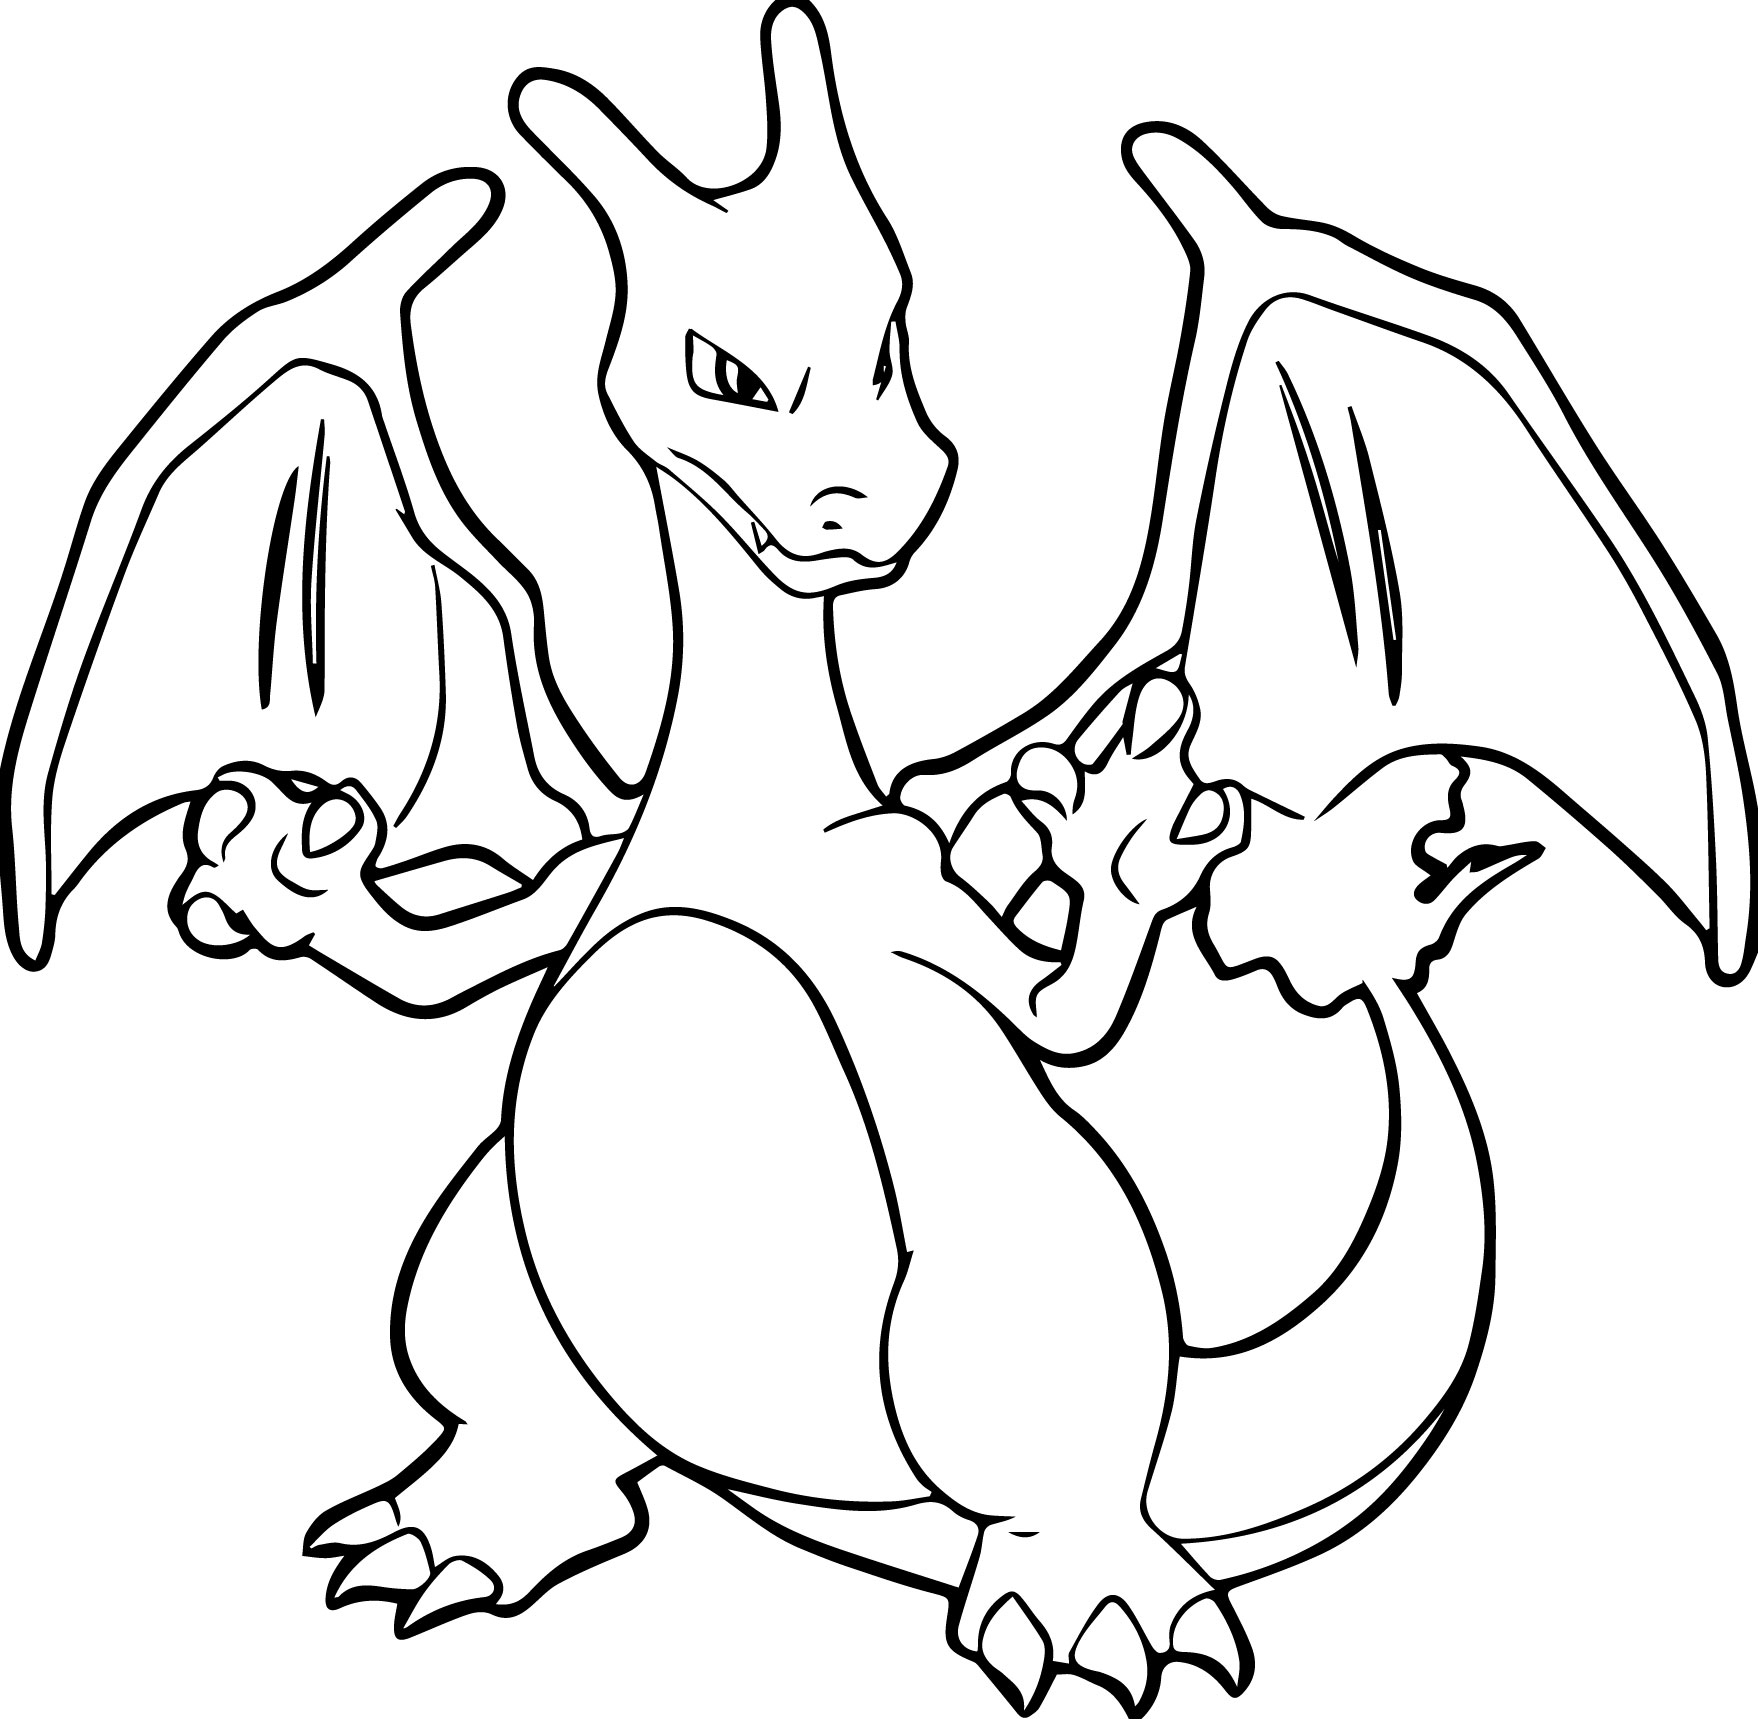 Charizard coloring pages to download and print for free